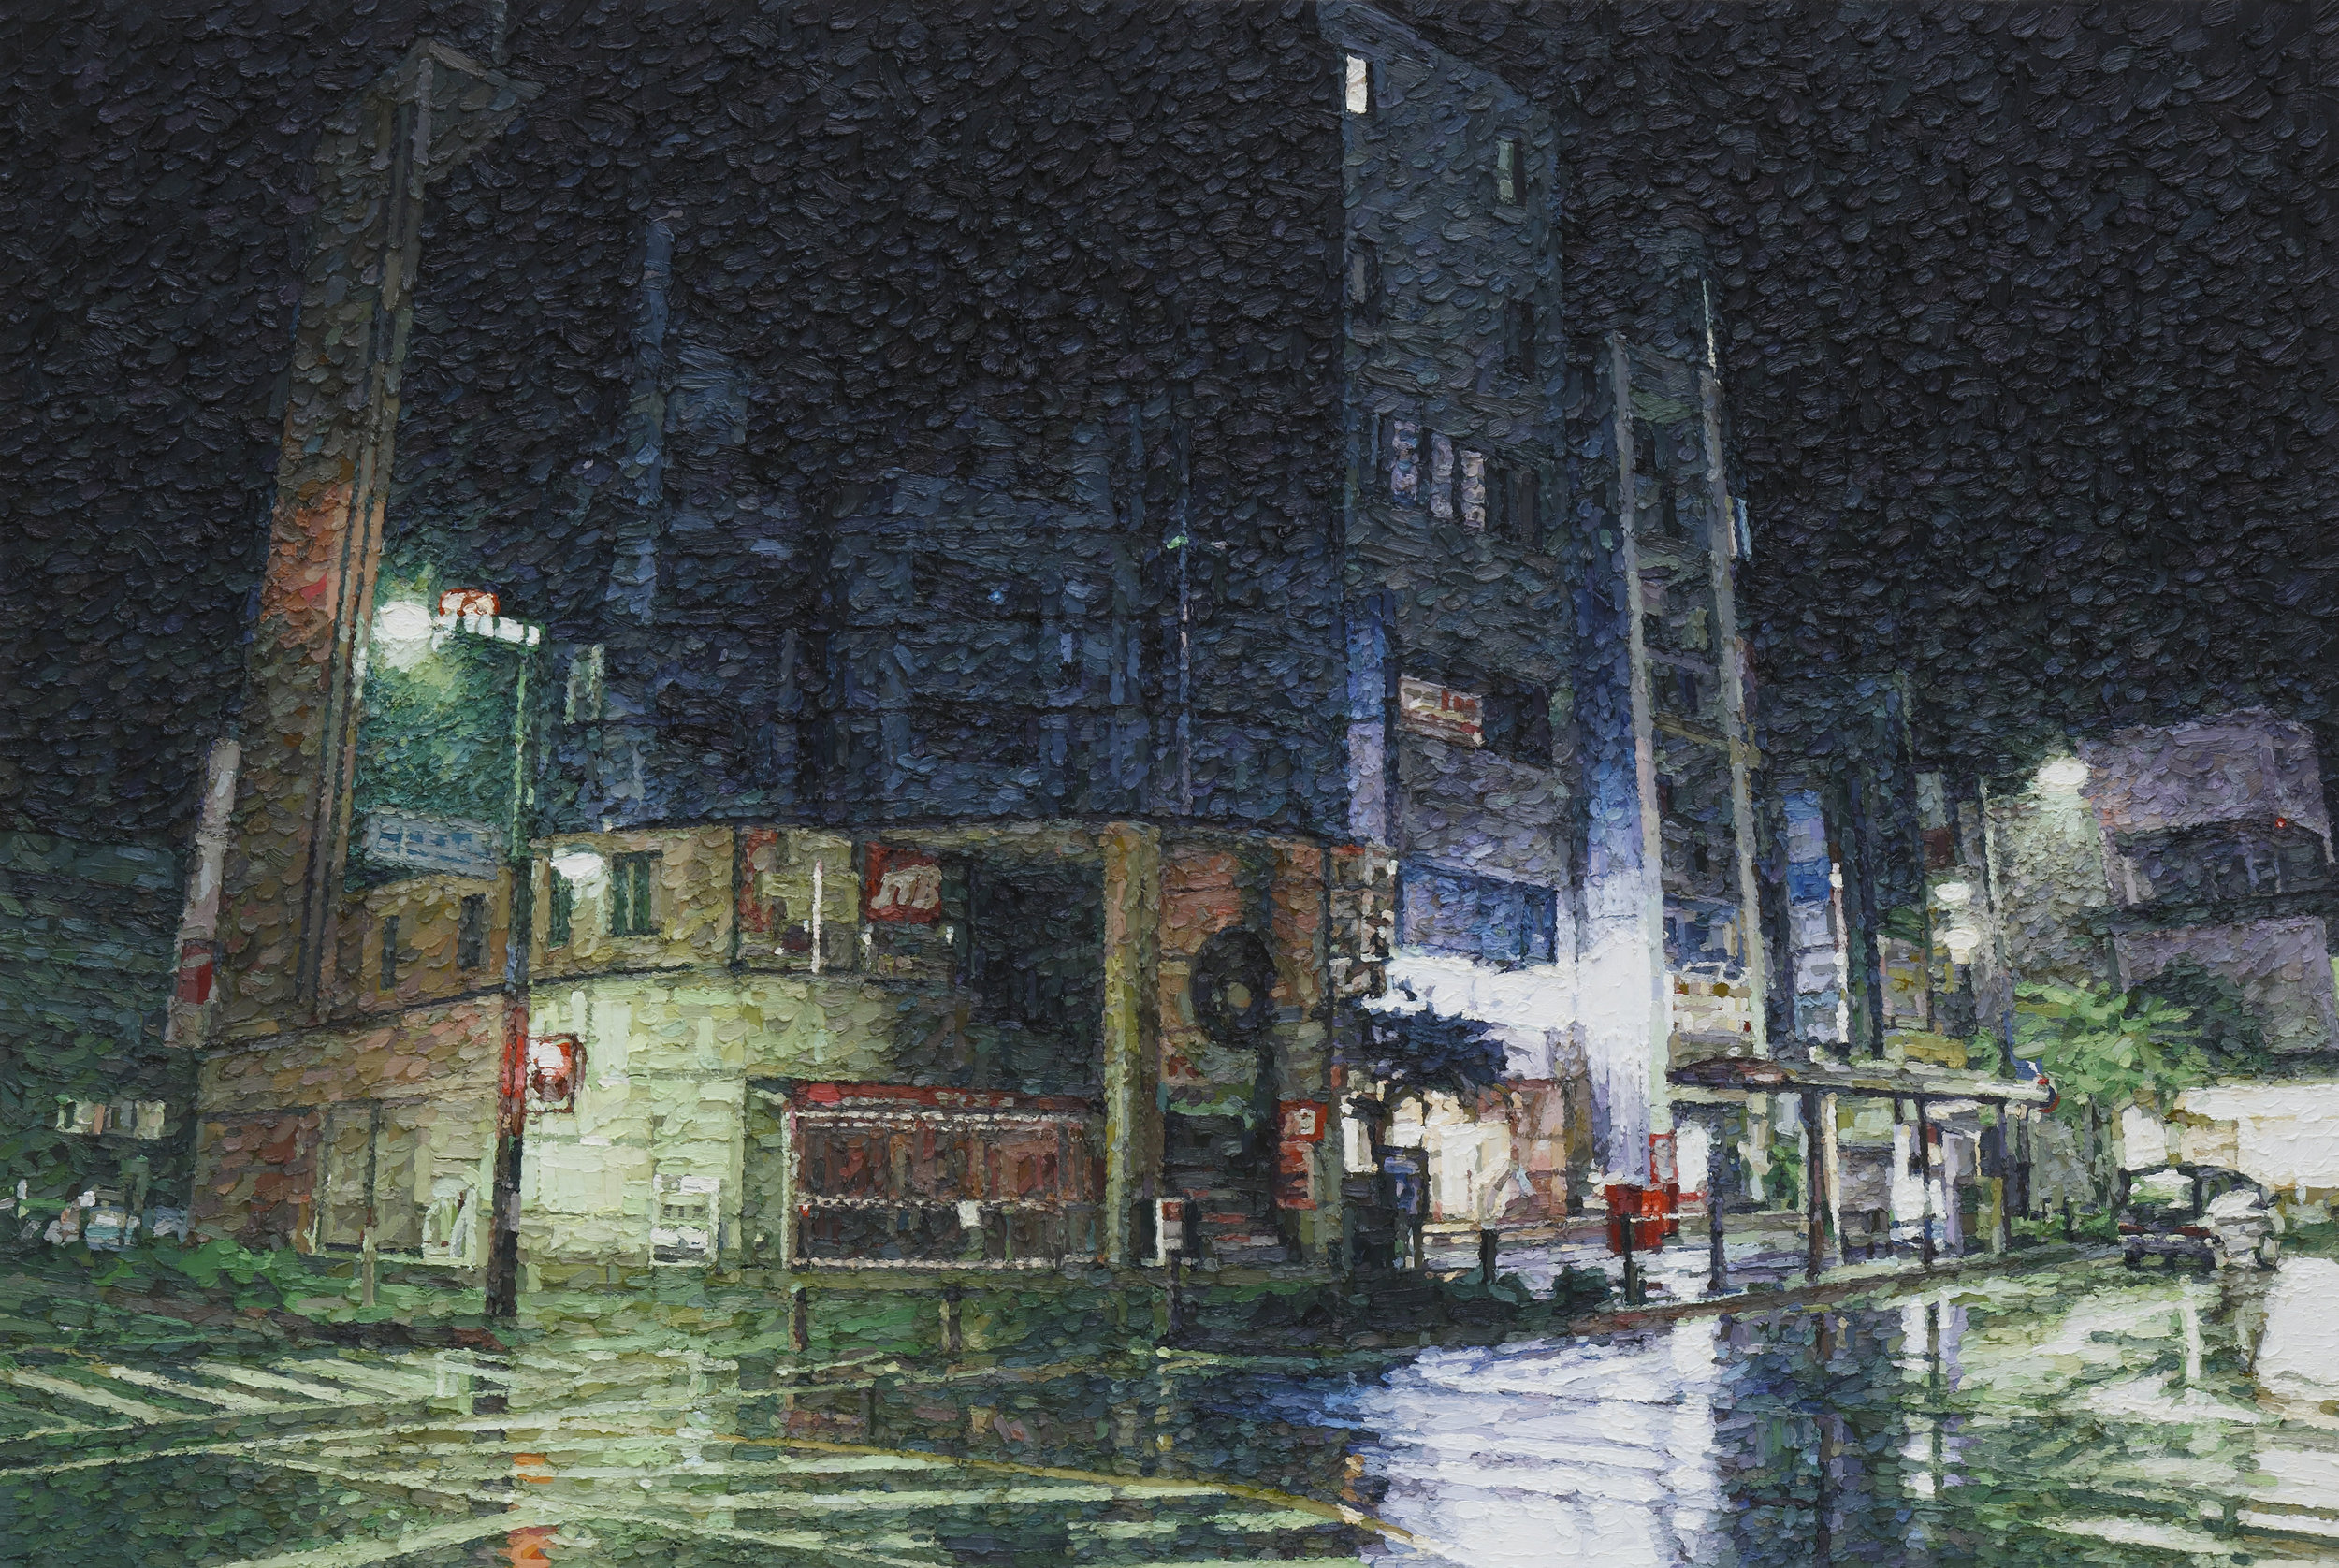 Night rain oil on canvas 130.3 x 194 cm 2014 photo by Keizo Kioku